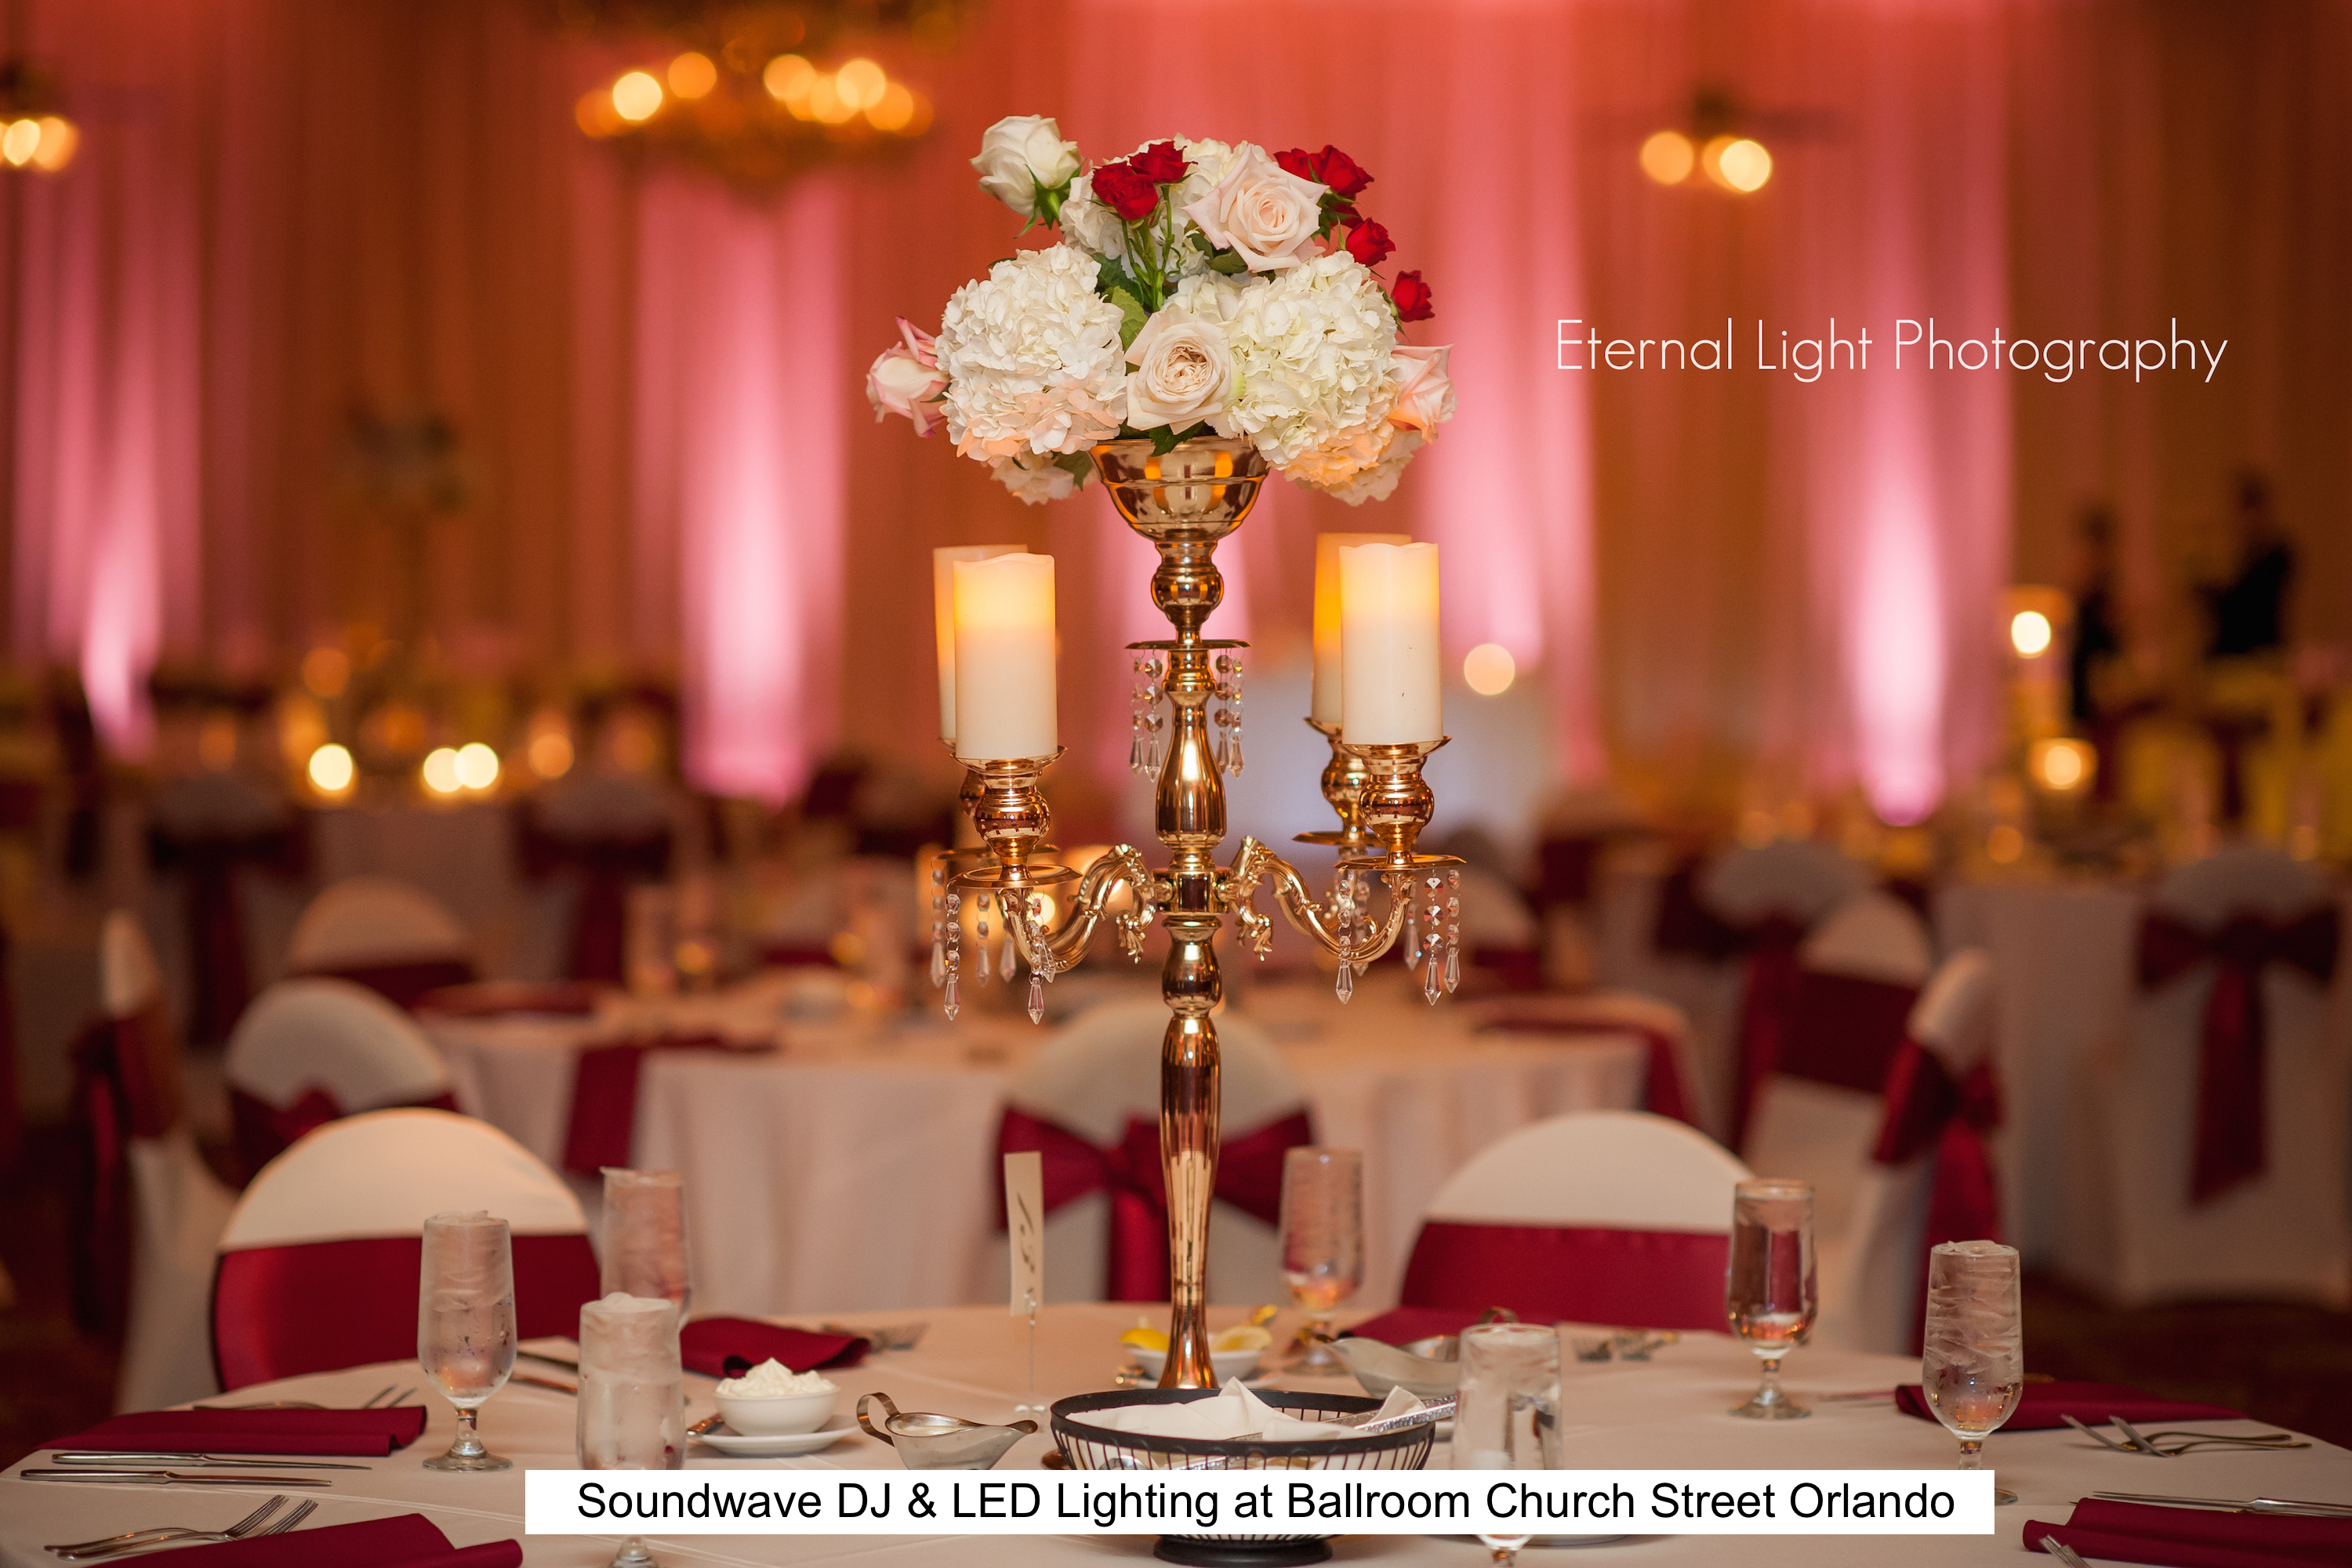 Soundwave Entertainment - Our Orlando Weddings - Ballroom At Church Street - Orlando, FL